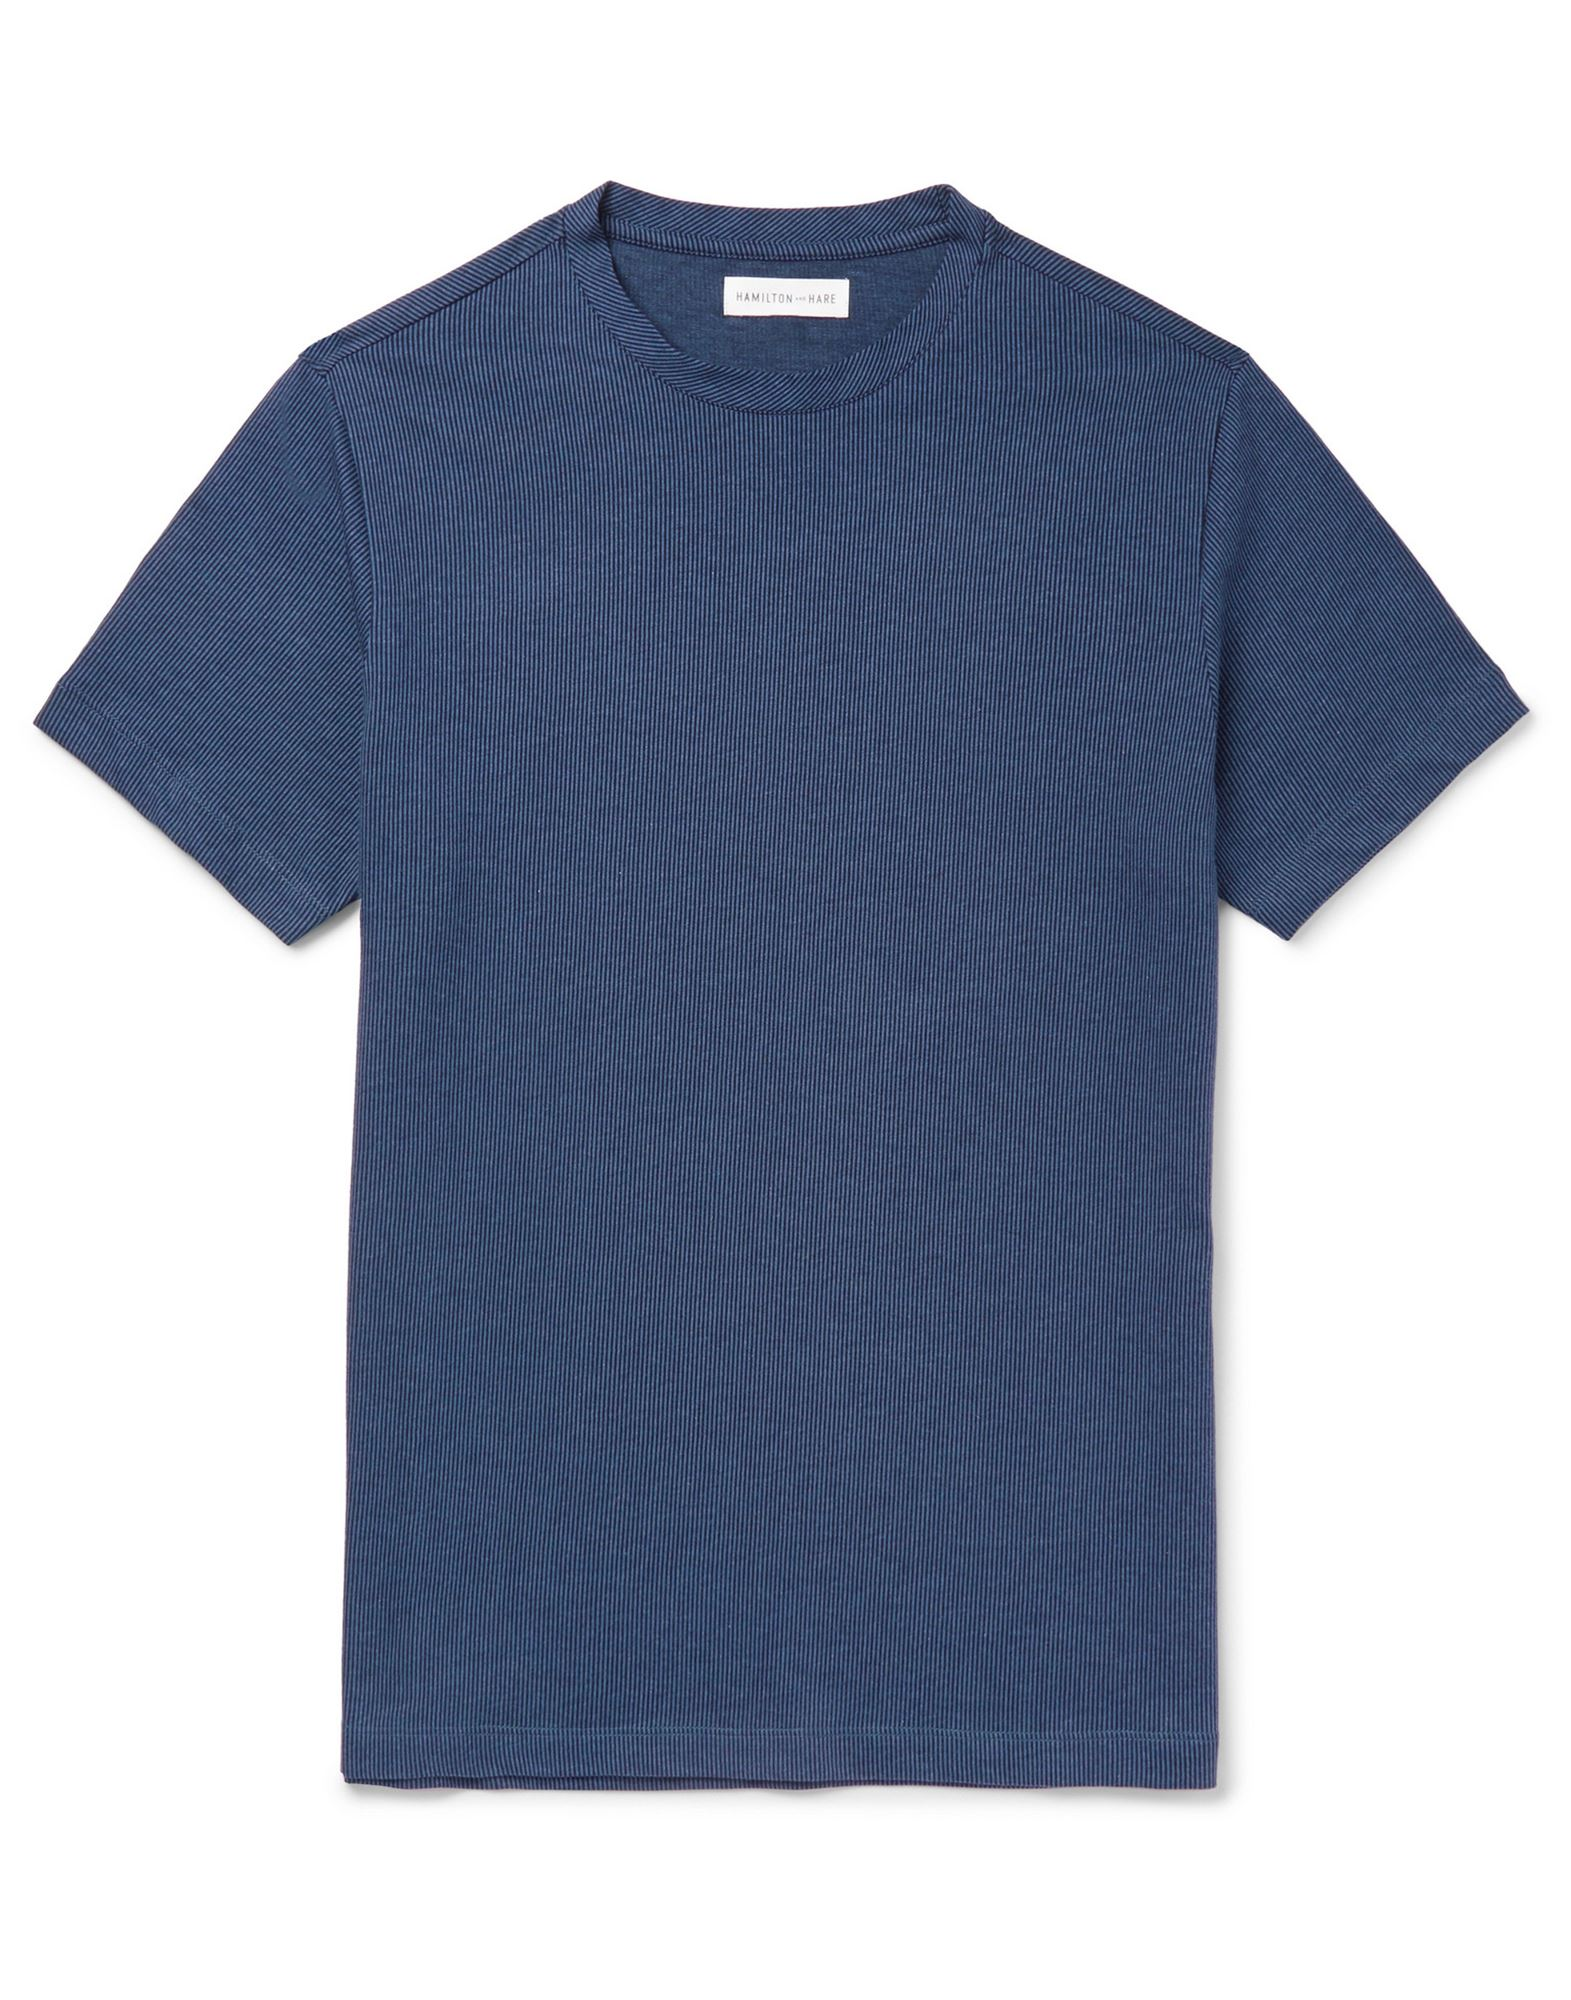 HAMILTON AND HARE T-shirts. jersey, no appliqués, stripes, round collar, short sleeves, no pockets. 100% Cotton